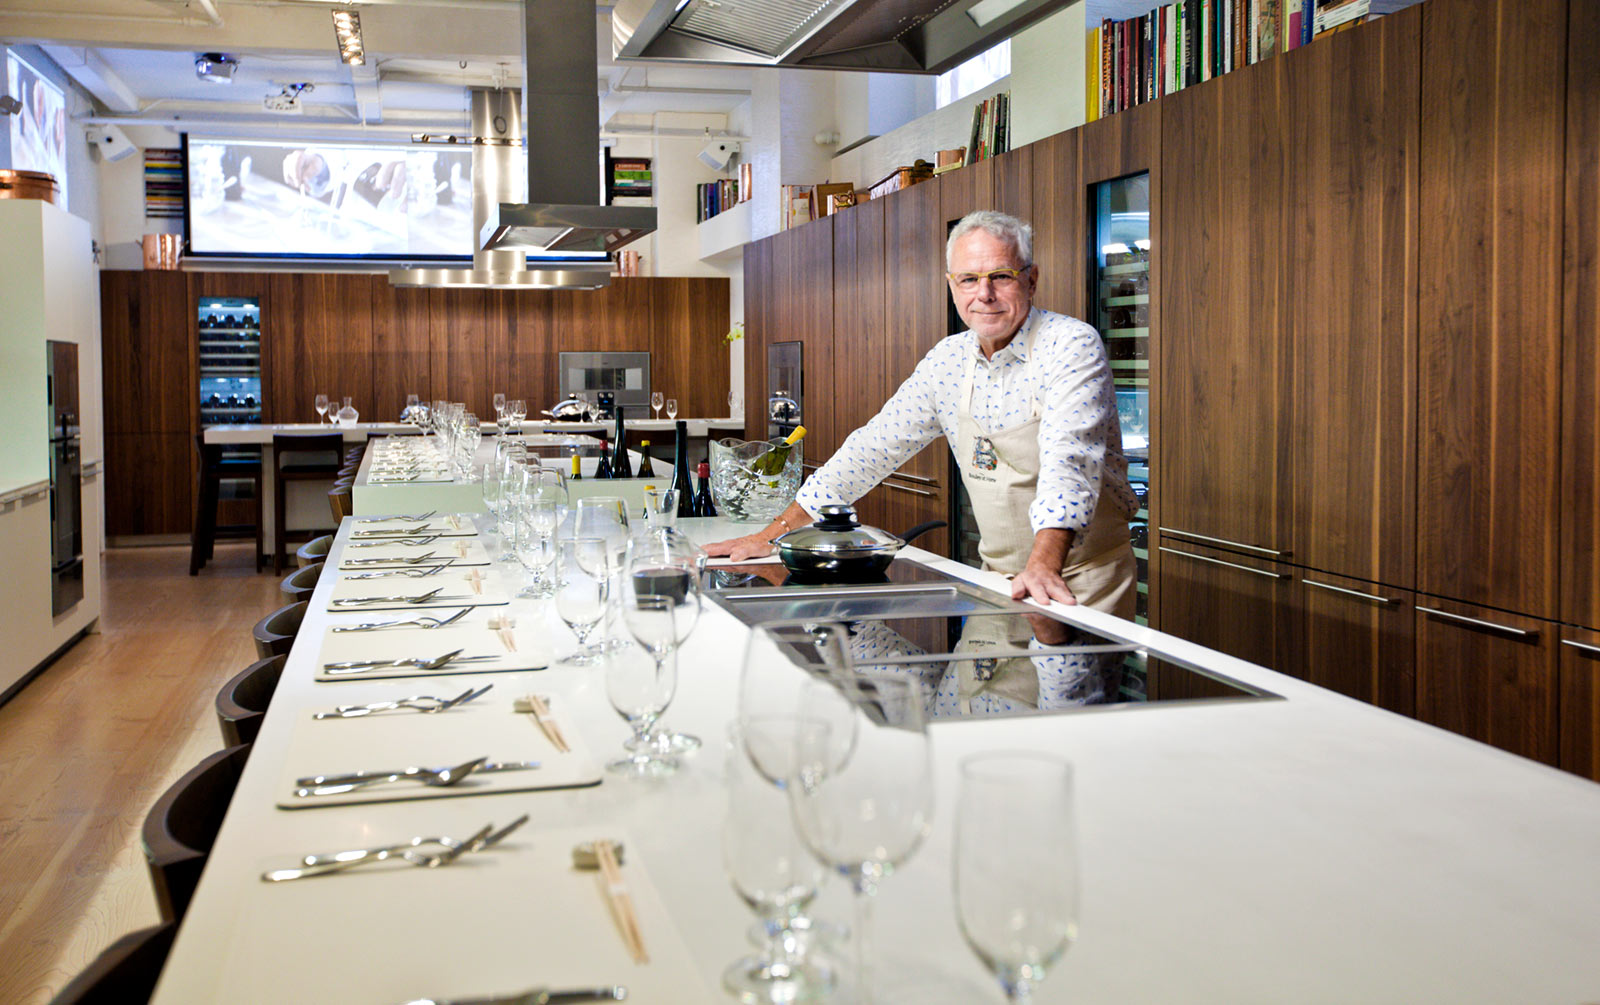 David-Bouley-at-Home_Photo_Nicole_BartelmeC